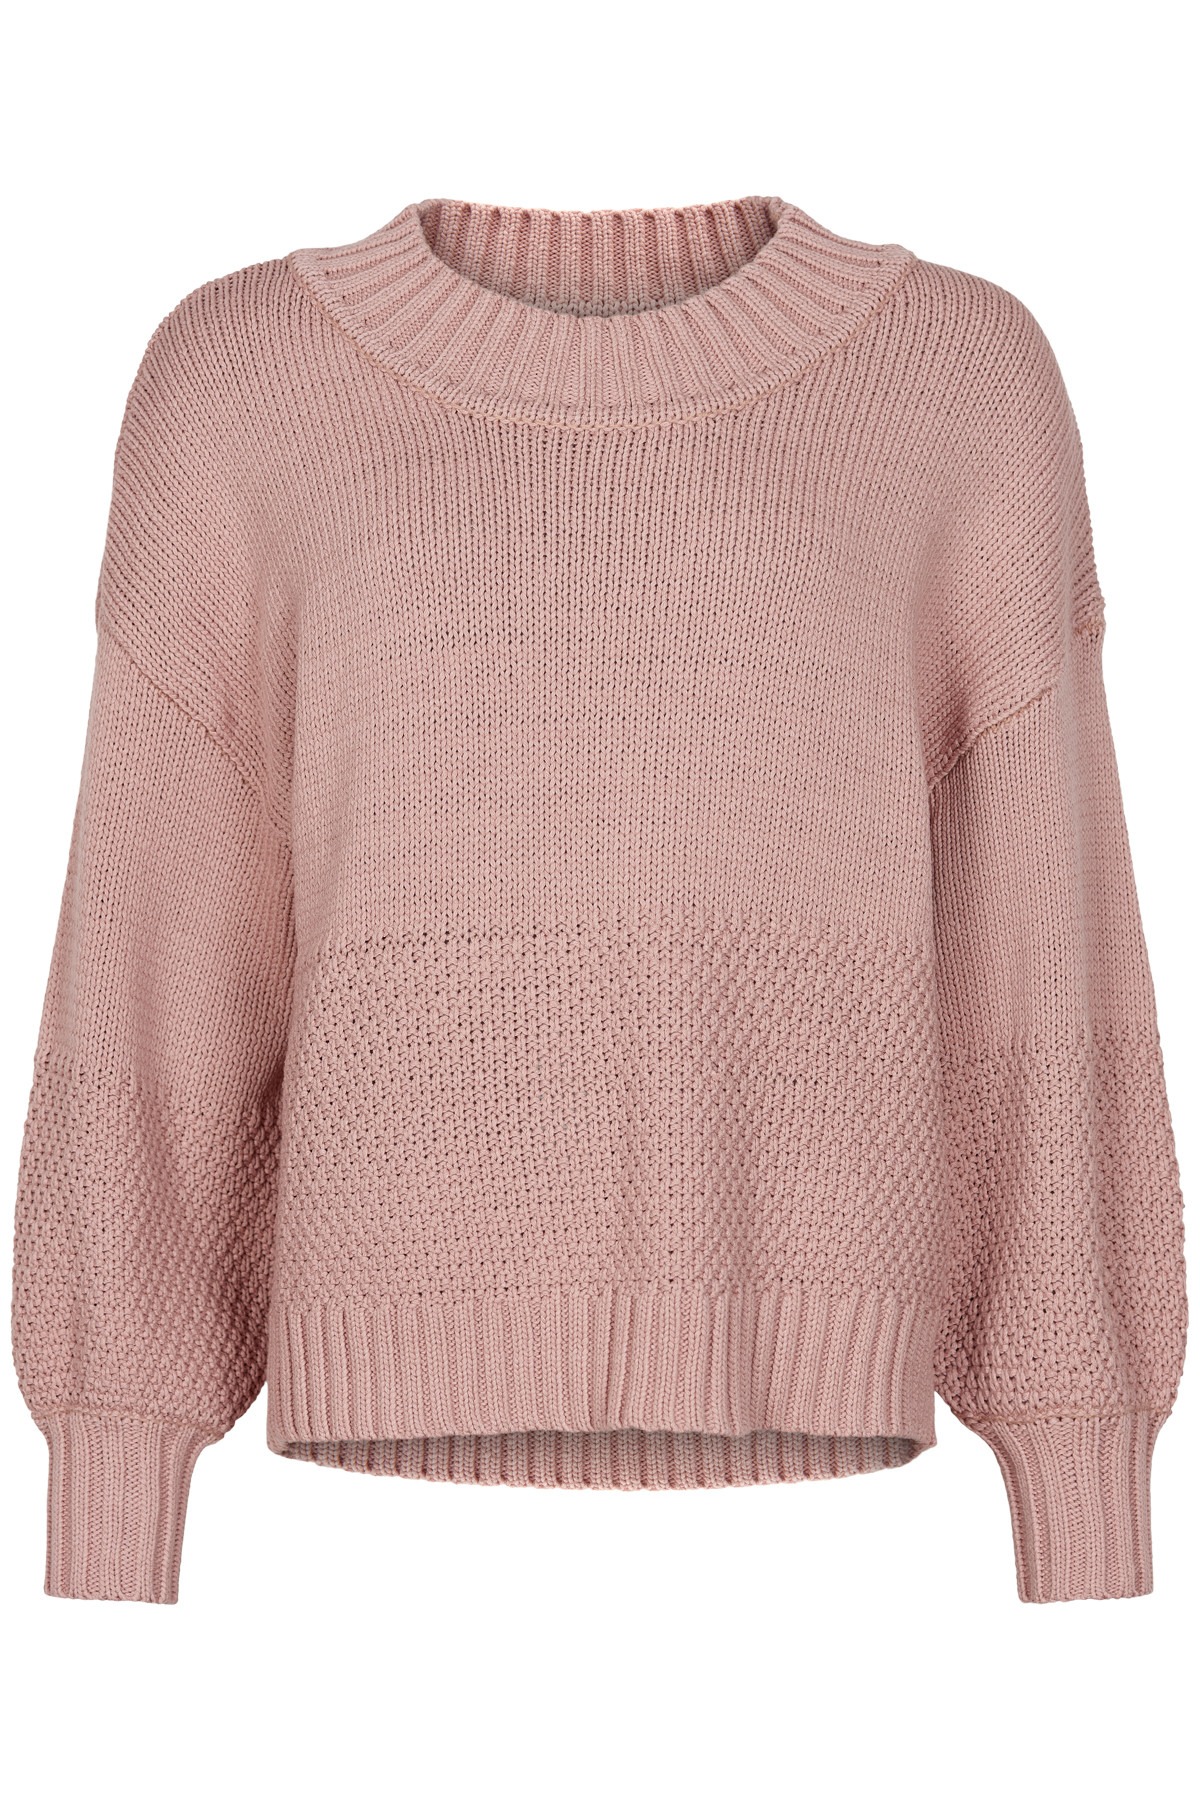 Image of   AND LESS ALANIESE PULLOVER 5120203 (Pale Mauve, S)